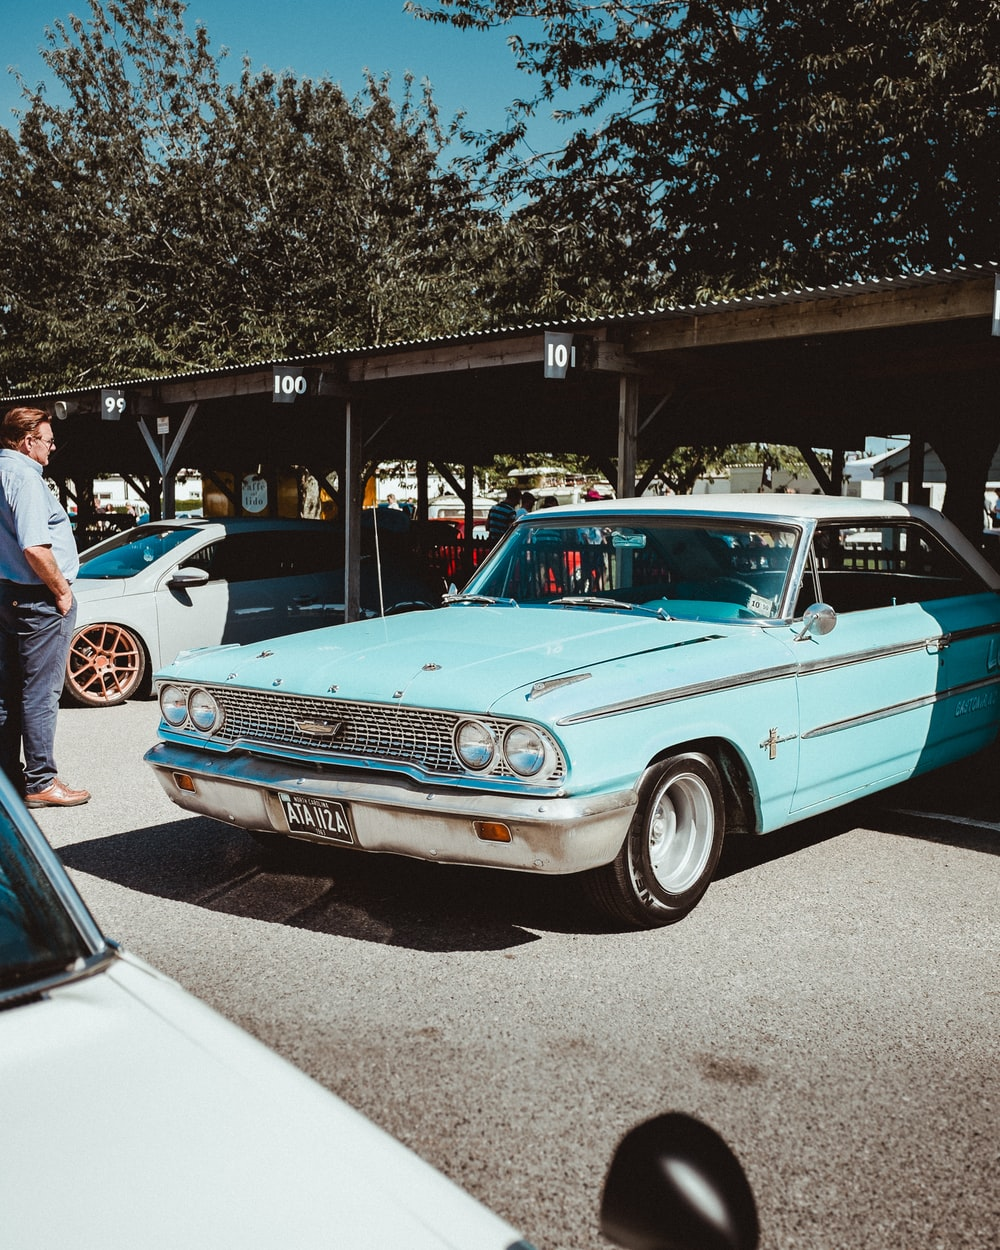 teal coupe parked on street